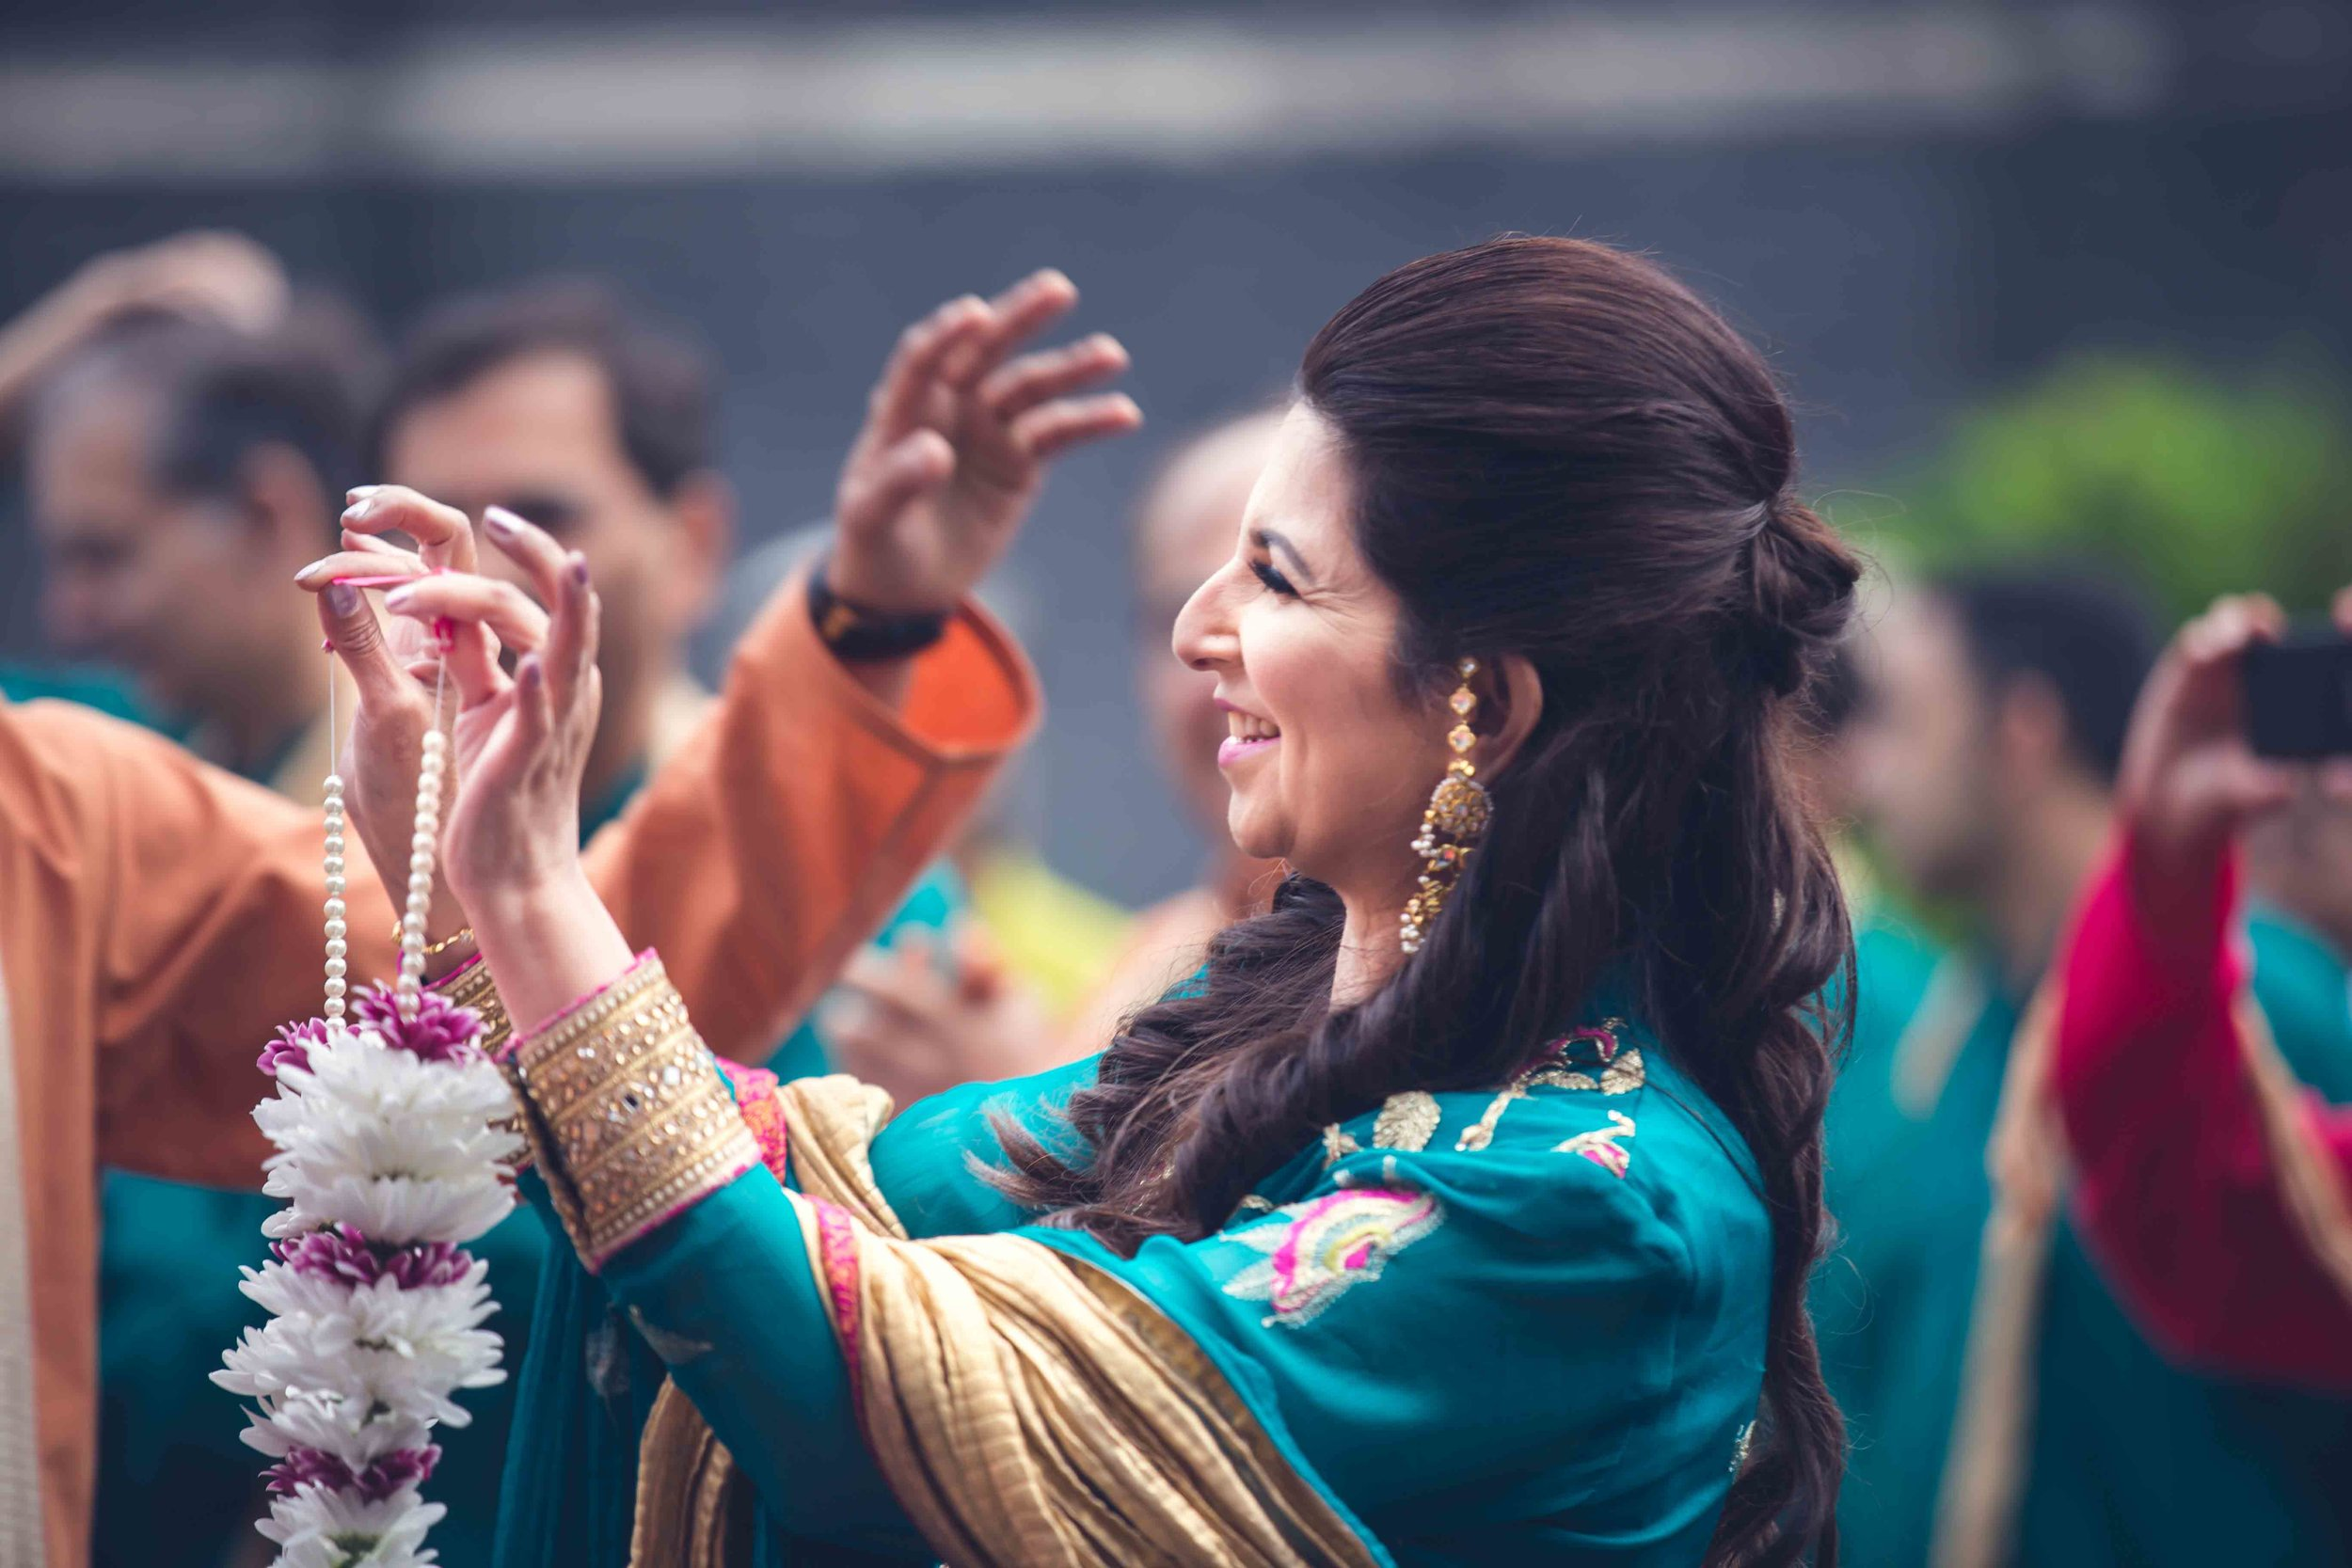 Asian Wedding Photographer Opu Sultan Photography Scotland Edinburgh Glasgow London Manchester Liverpool Birmingham Wedding Photos Salman & Maha Blog Photos-35.jpg